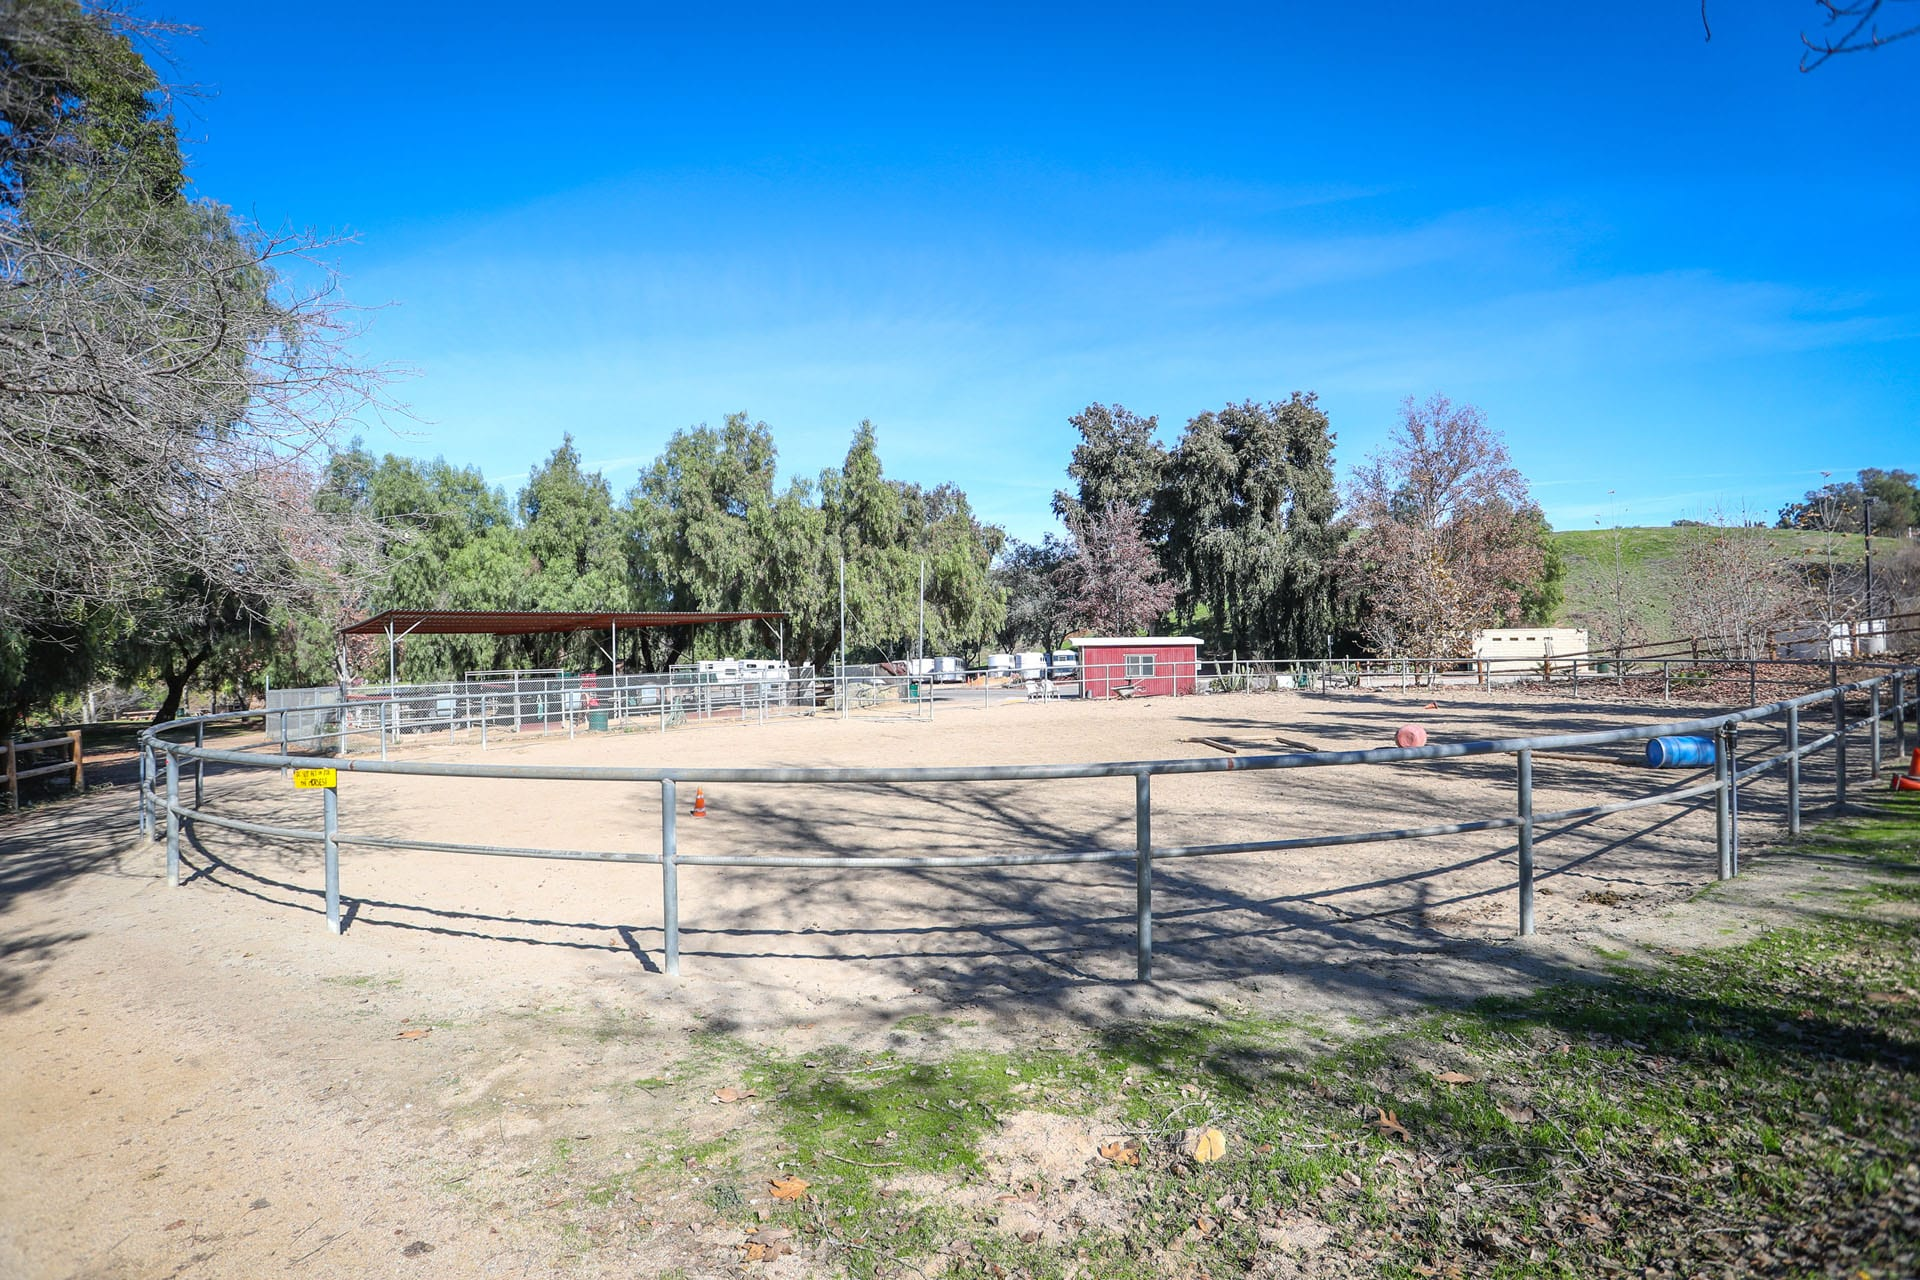 View of an equestrian center ring